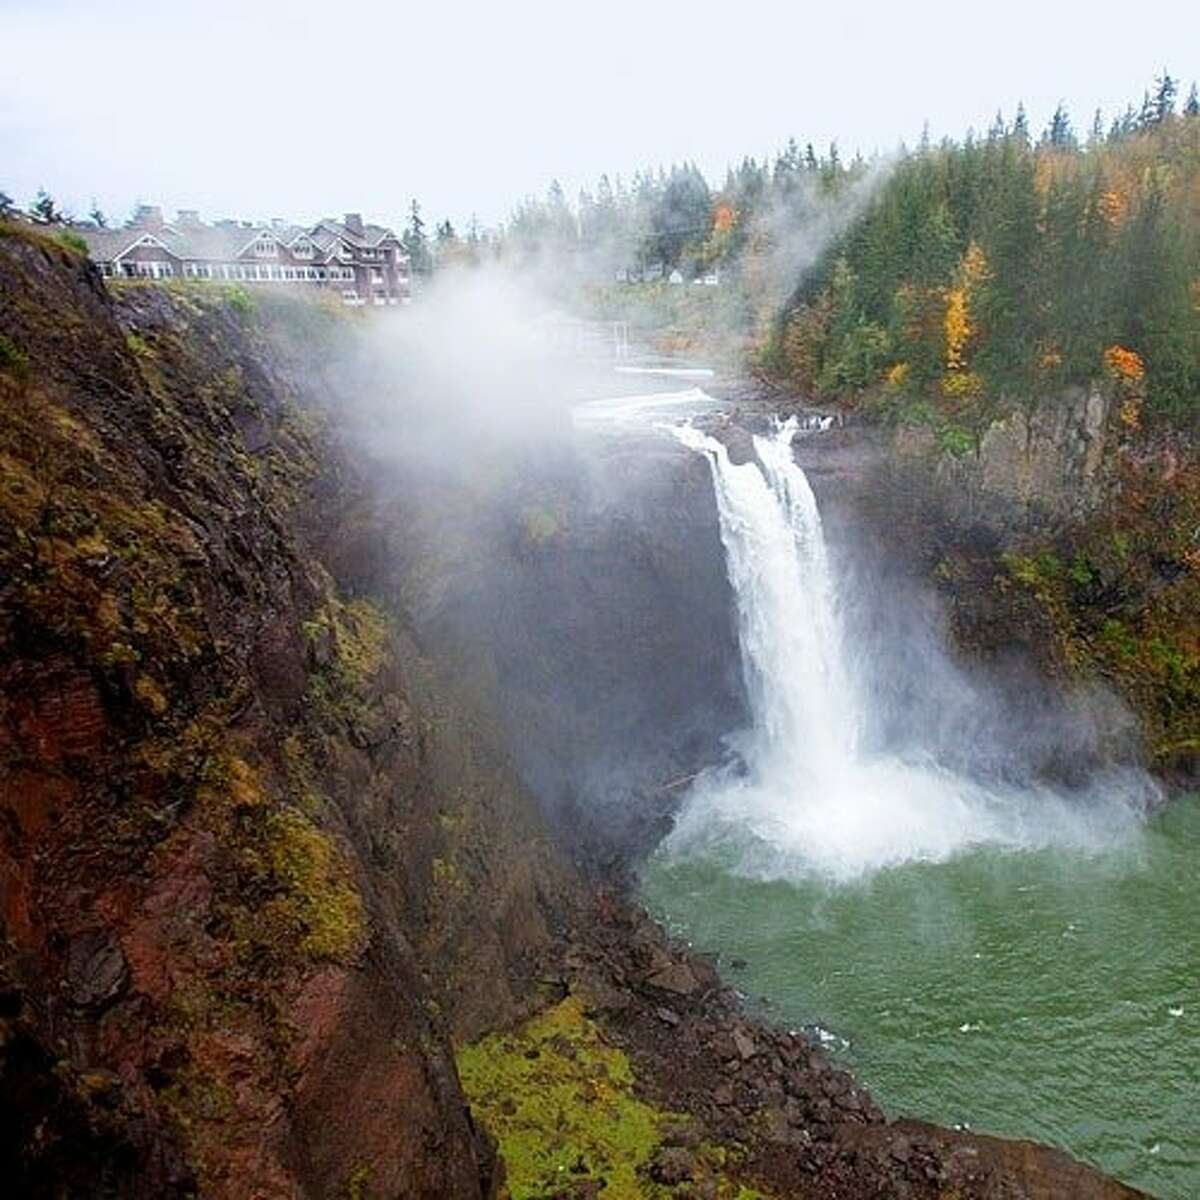 Before or during your journey to Salish Lodge & Spa, we'd suggest swinging through Snoqualmie Falls Brewery and Taproom for a pint on tap and a pretzel braid. The low-key brewpub with bubbling pizzas overlooks the Snoqualmie River, and welcomes kids and four-legged friends for a beverage on the patio alongside cooling umbrellas and friendly staff. Though the journey out to Snoqualmie is just around 30 minutes from Seattle, we'd suggest spending a night or two at the renowned Salish Lodge & Spa. Perched atop the 268-foot Snoqualmie falls, Salish Lodge is beloved by those seeking a welcomingly warm and remarkably refreshing escape from the everyday.